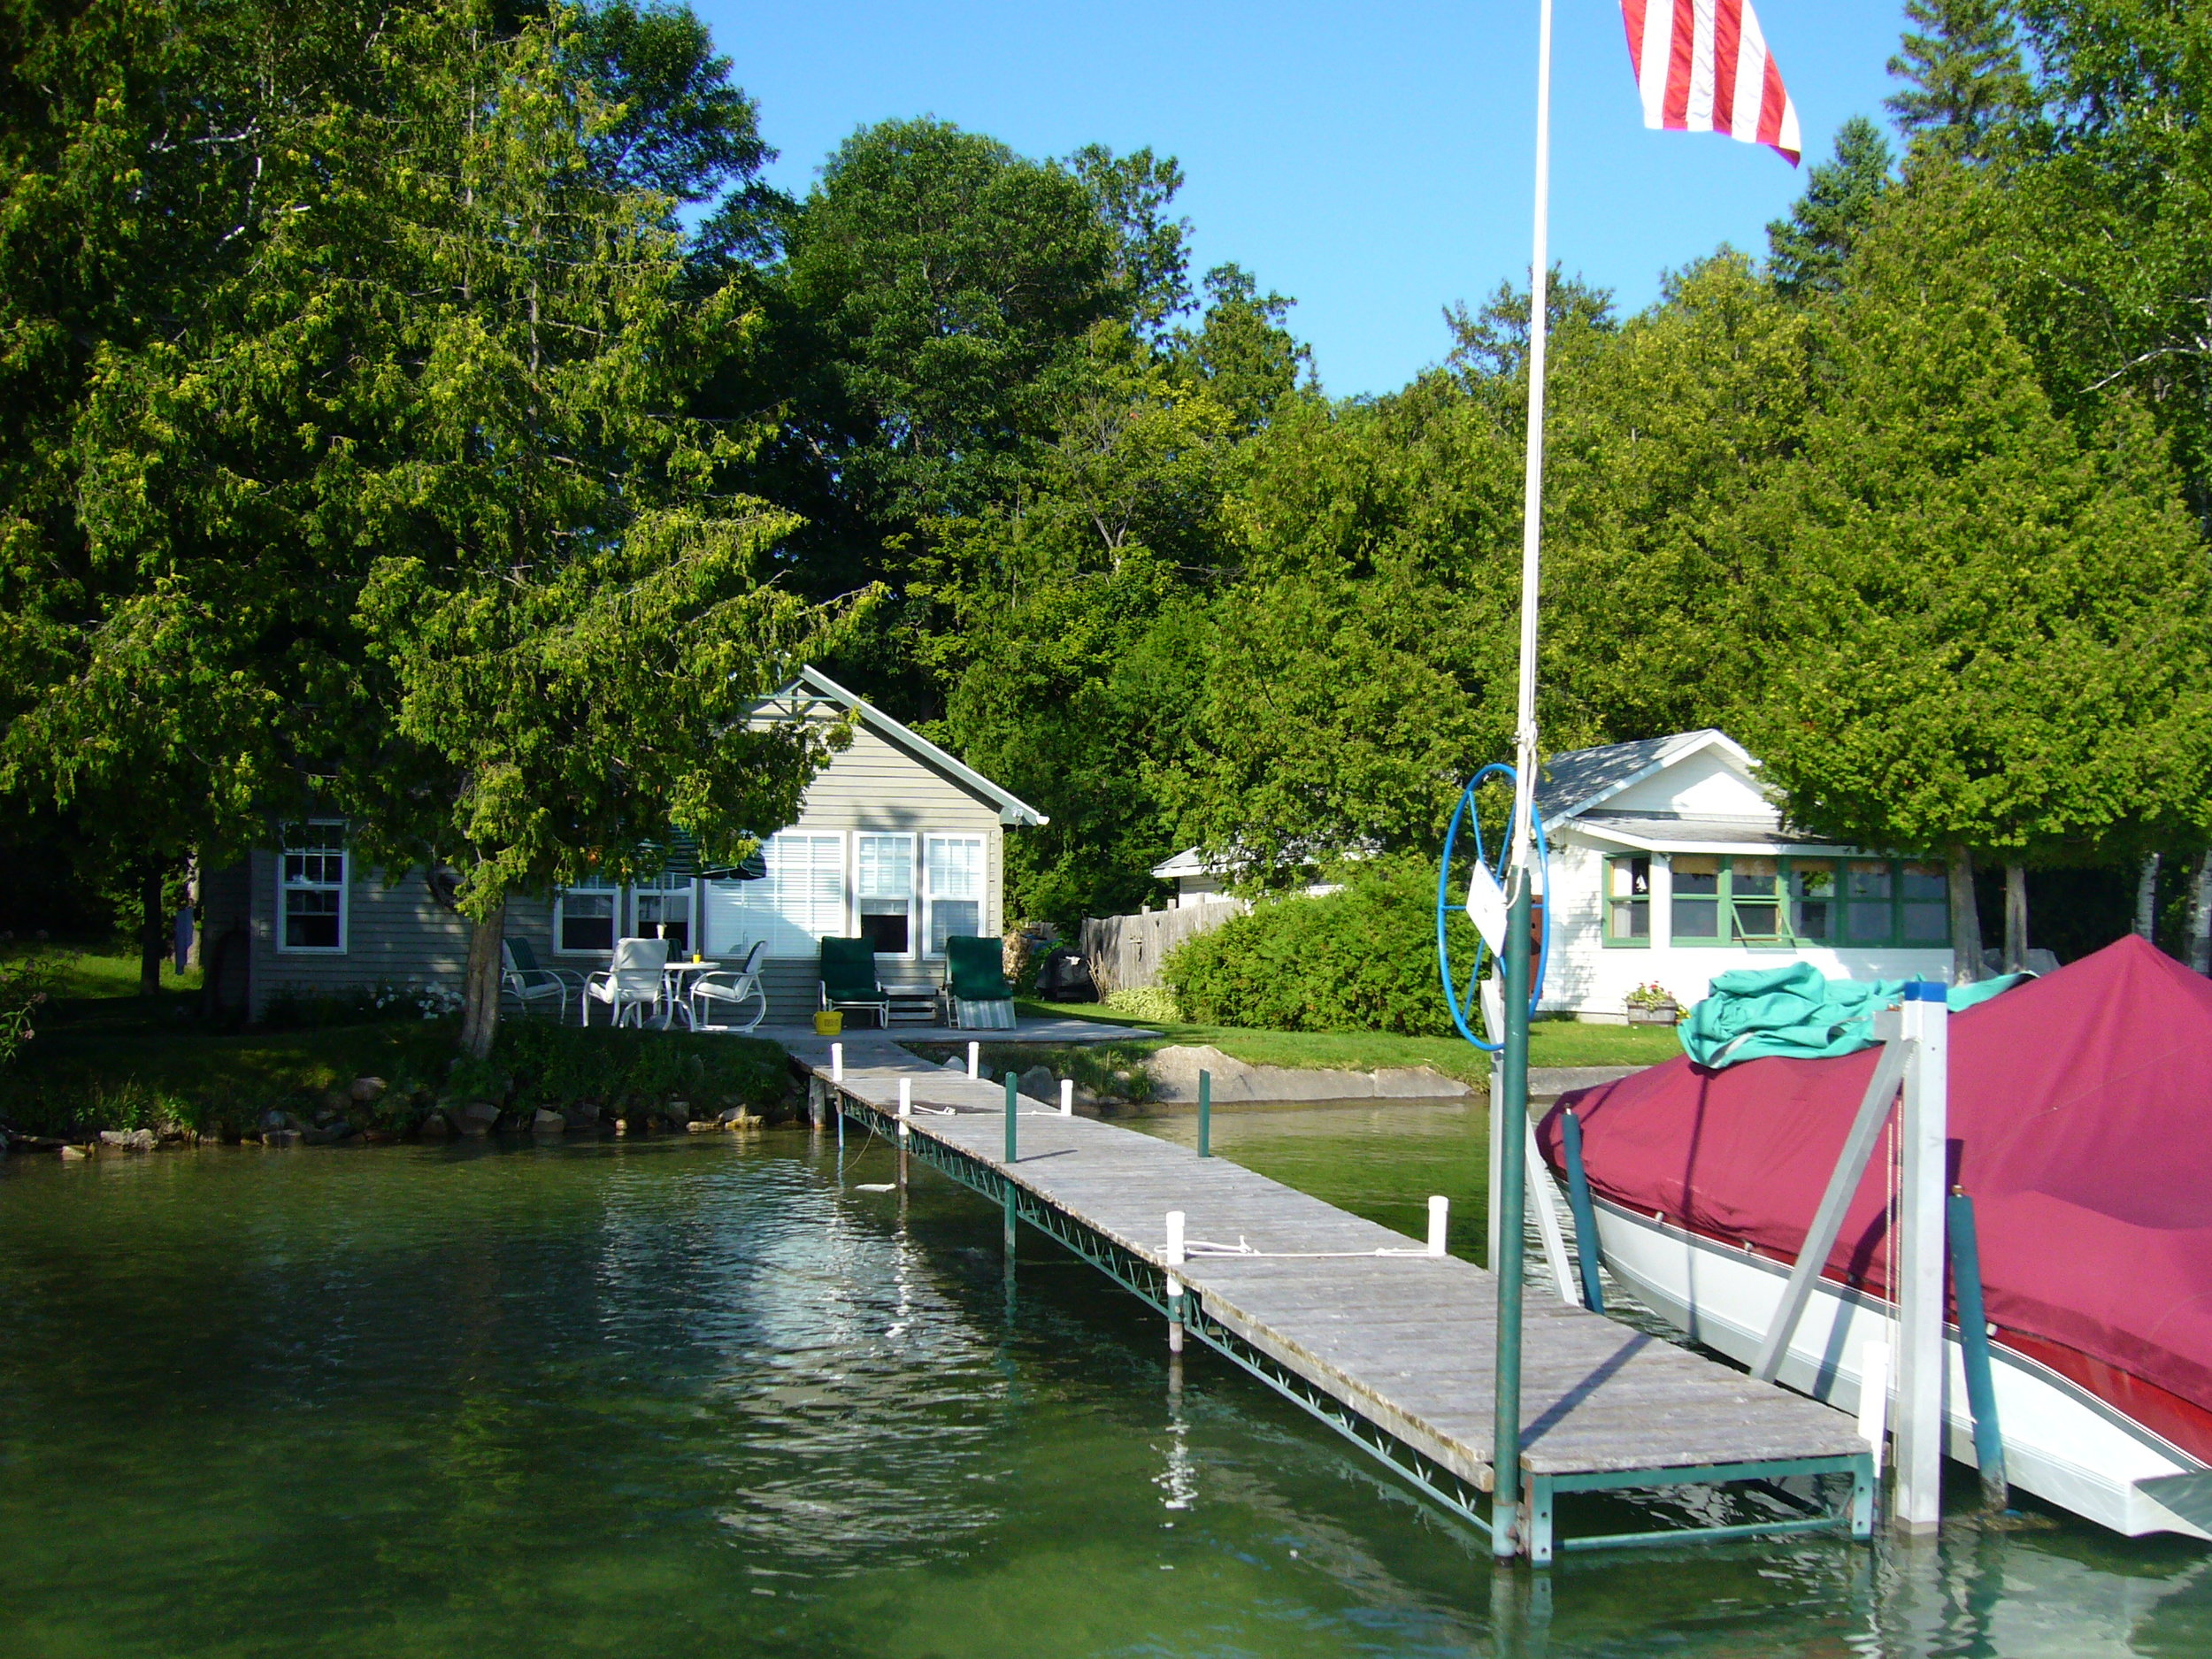 View of the cottage from the front, out on the water.